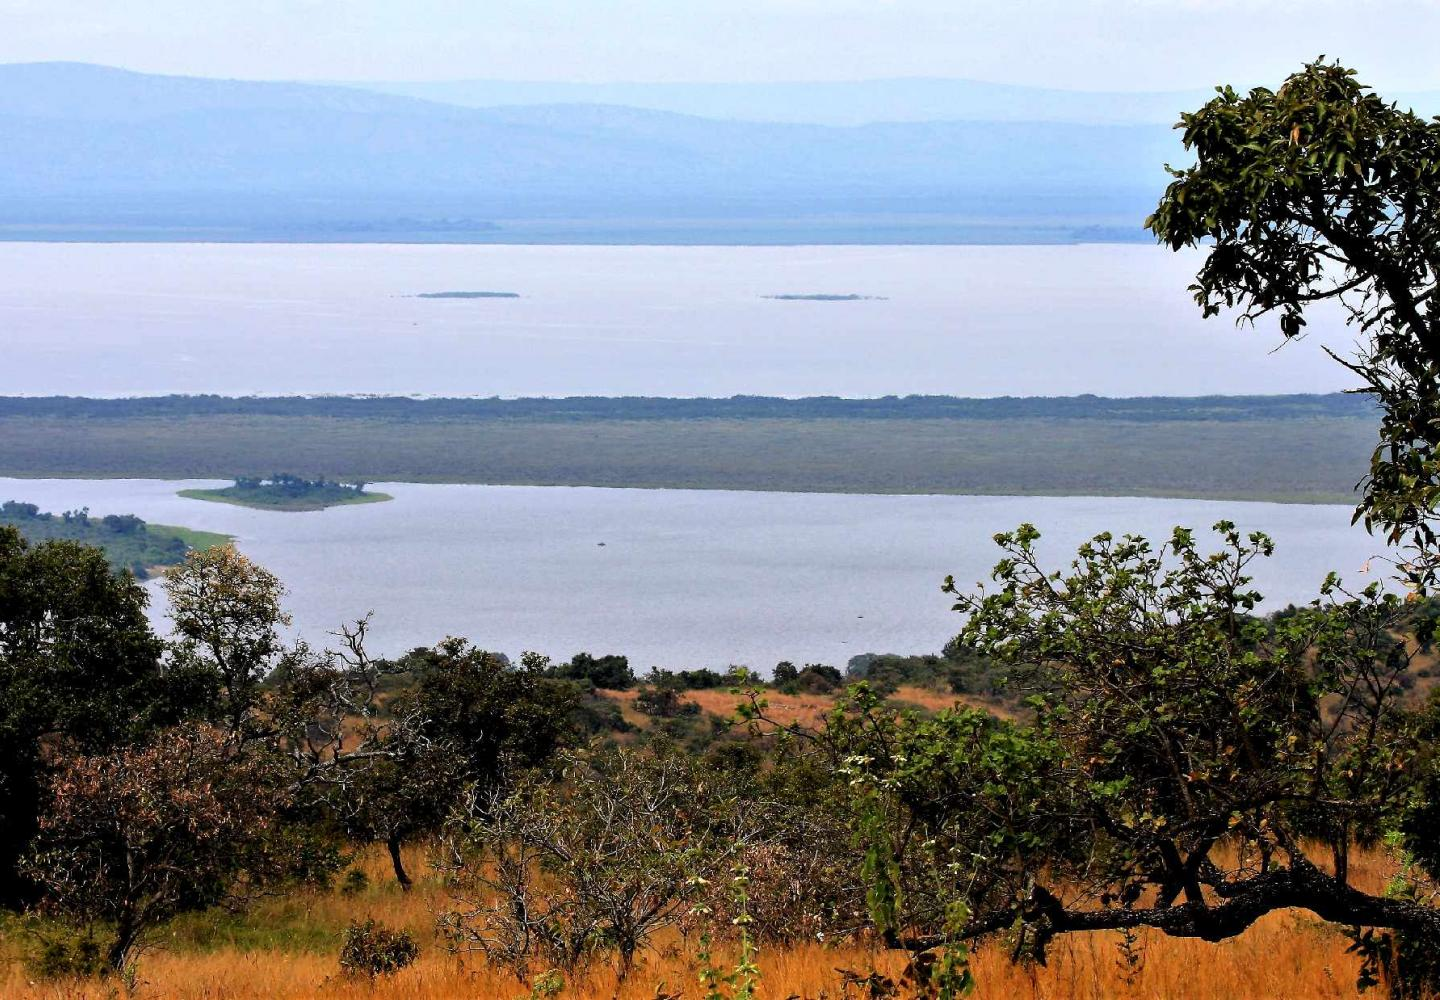 View on Akagera Lakes from Mutumba Heights (Akagera National Park Rwanda)